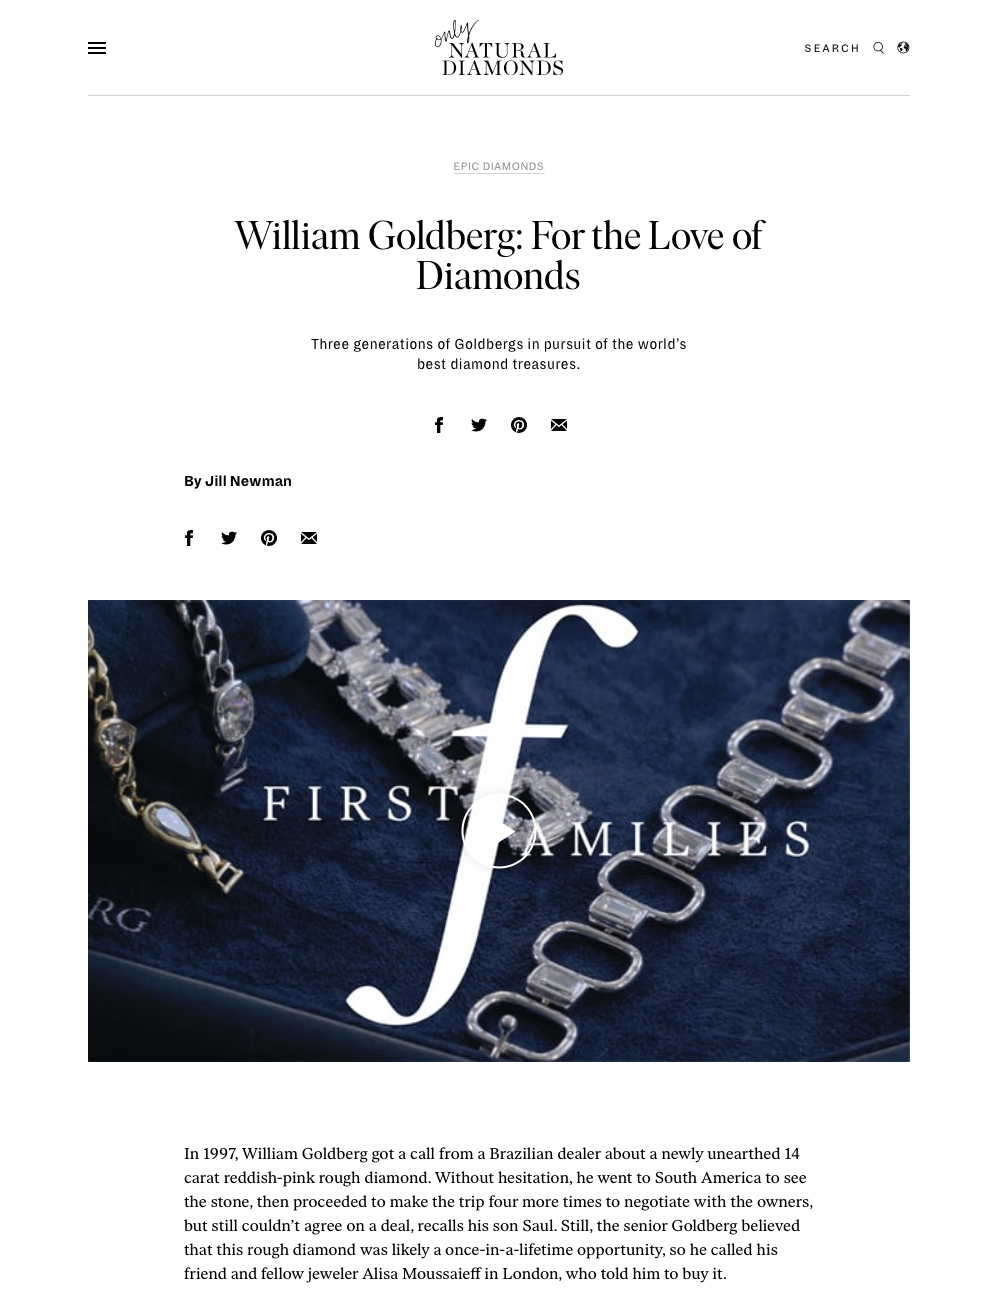 Only Natural Diamonds First Families William Goldberg